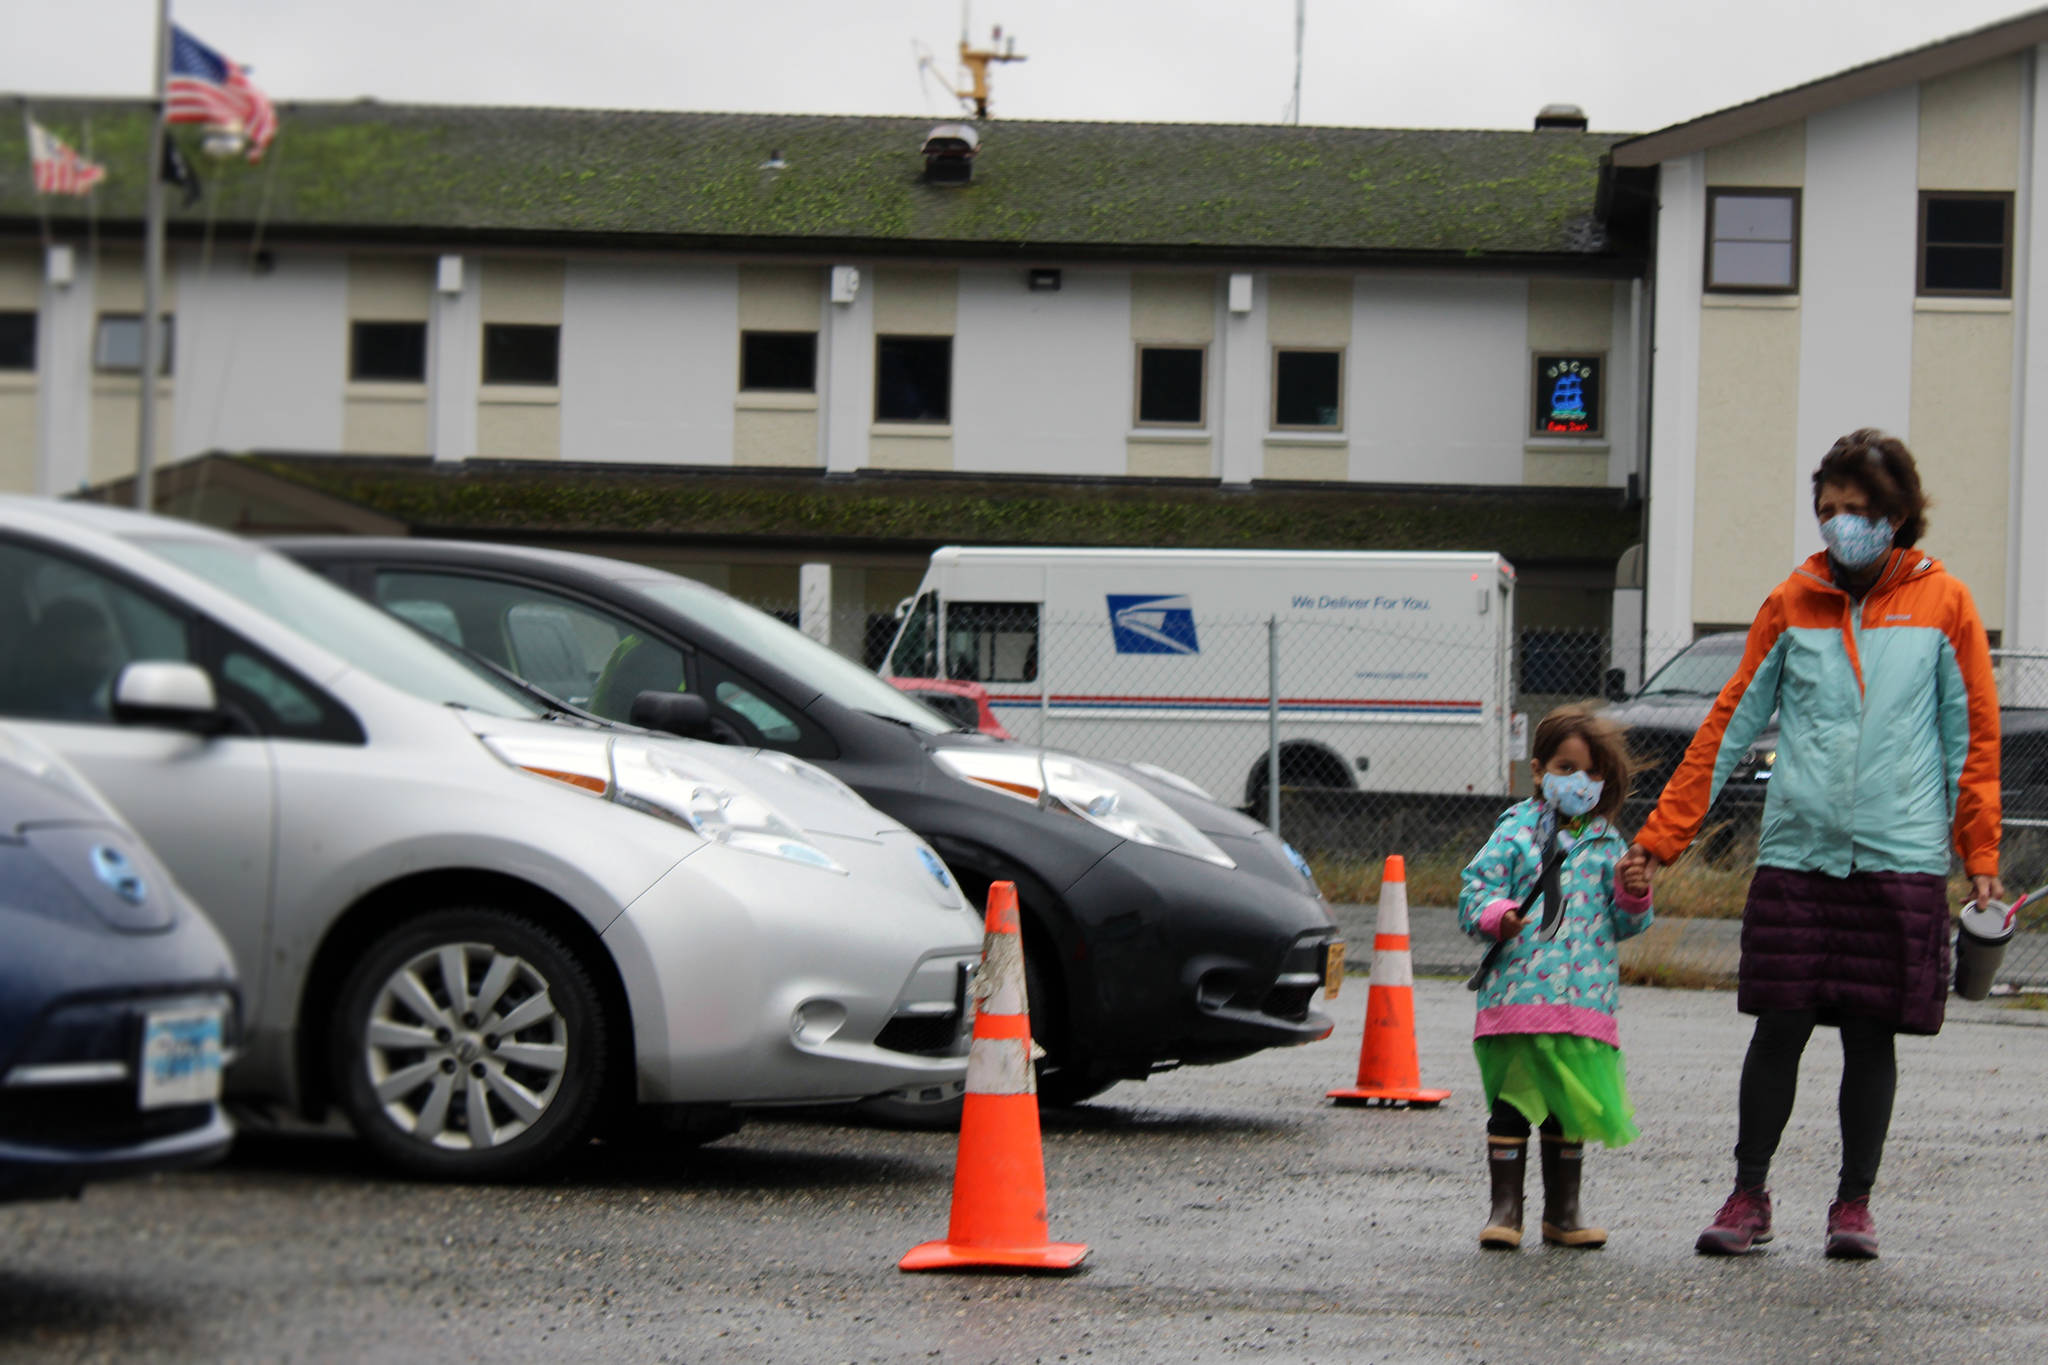 Nathea Burnet holds both a plastic ax and her grandmother, Patricia Forrest's, hand while looking at electric vehicles during Juneau Electric Vehicle Association's road rally Saturday, Sept. 26, 2020. On a per capita basis, there is one electric vehicle per 76 residents in Juneau. There were 418 EVs registered in Juneau as of November 2020. (Ben Hohenstatt / Juneau Empire File)